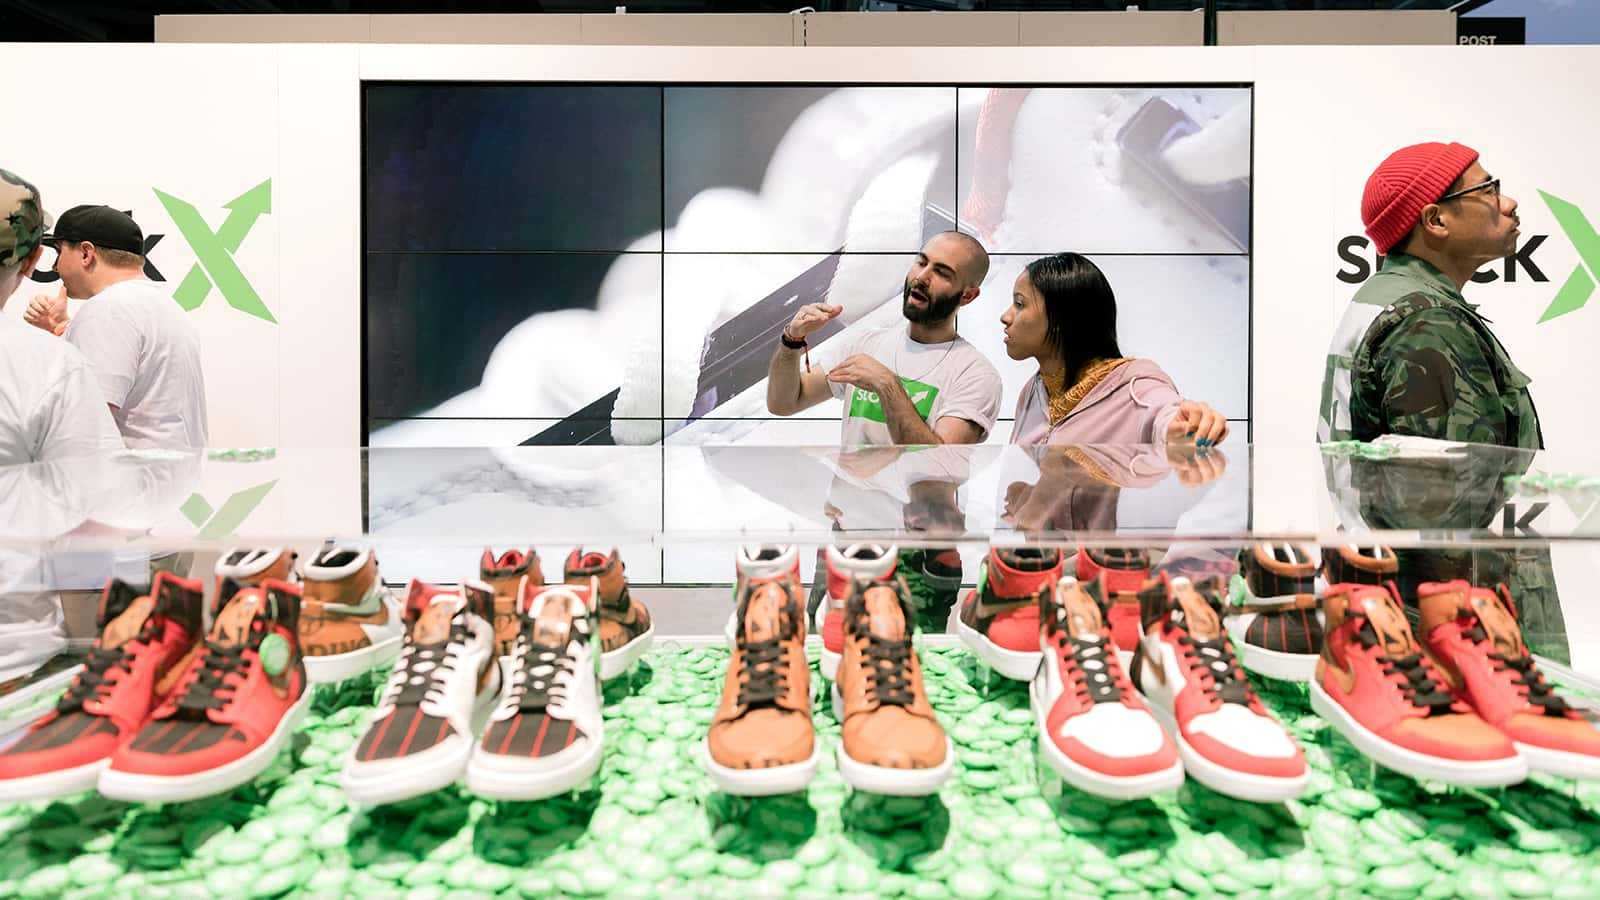 Brand ambassador instructs at the StockX ComplexCon 2017 booth.